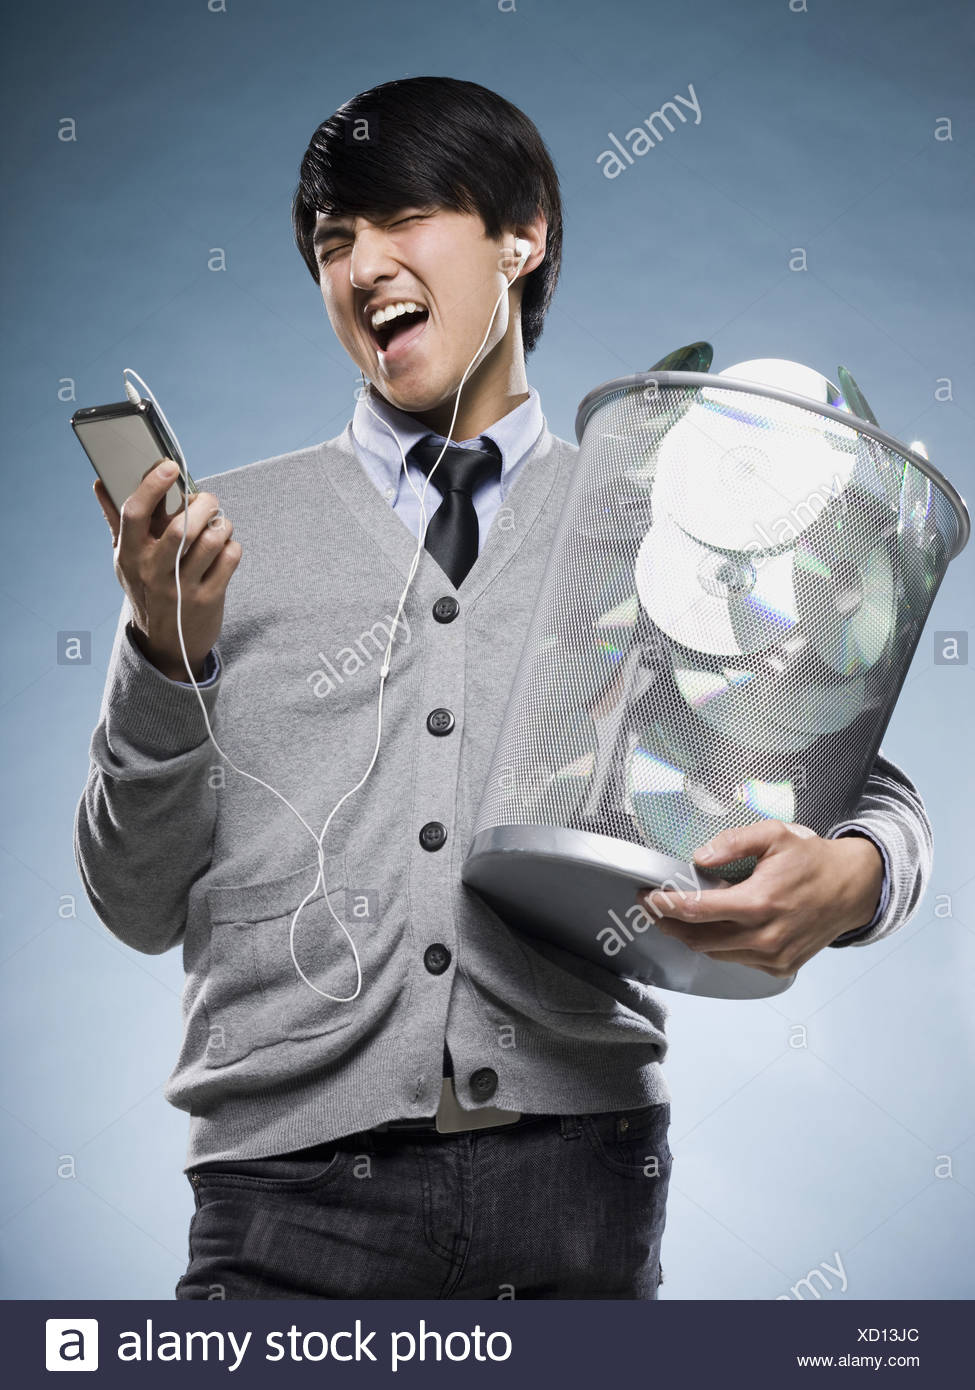 man with a trash can full of cd's and holding an iPod - Stock Image